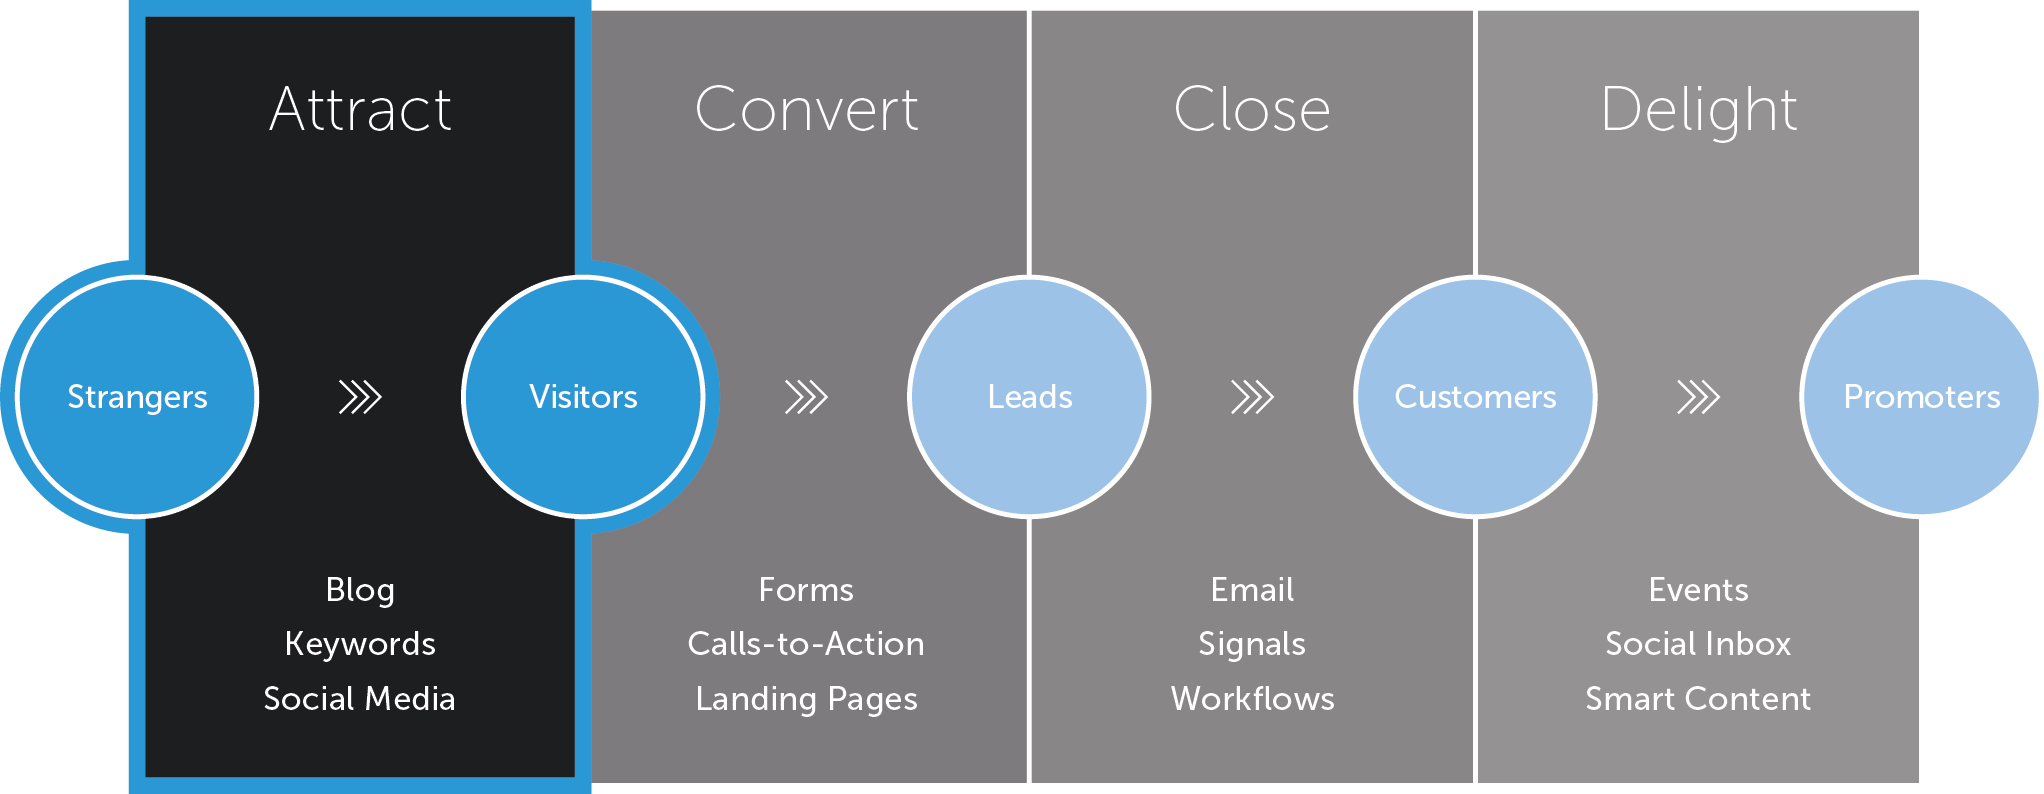 Inboundmarketing-4stages_1-attract.png